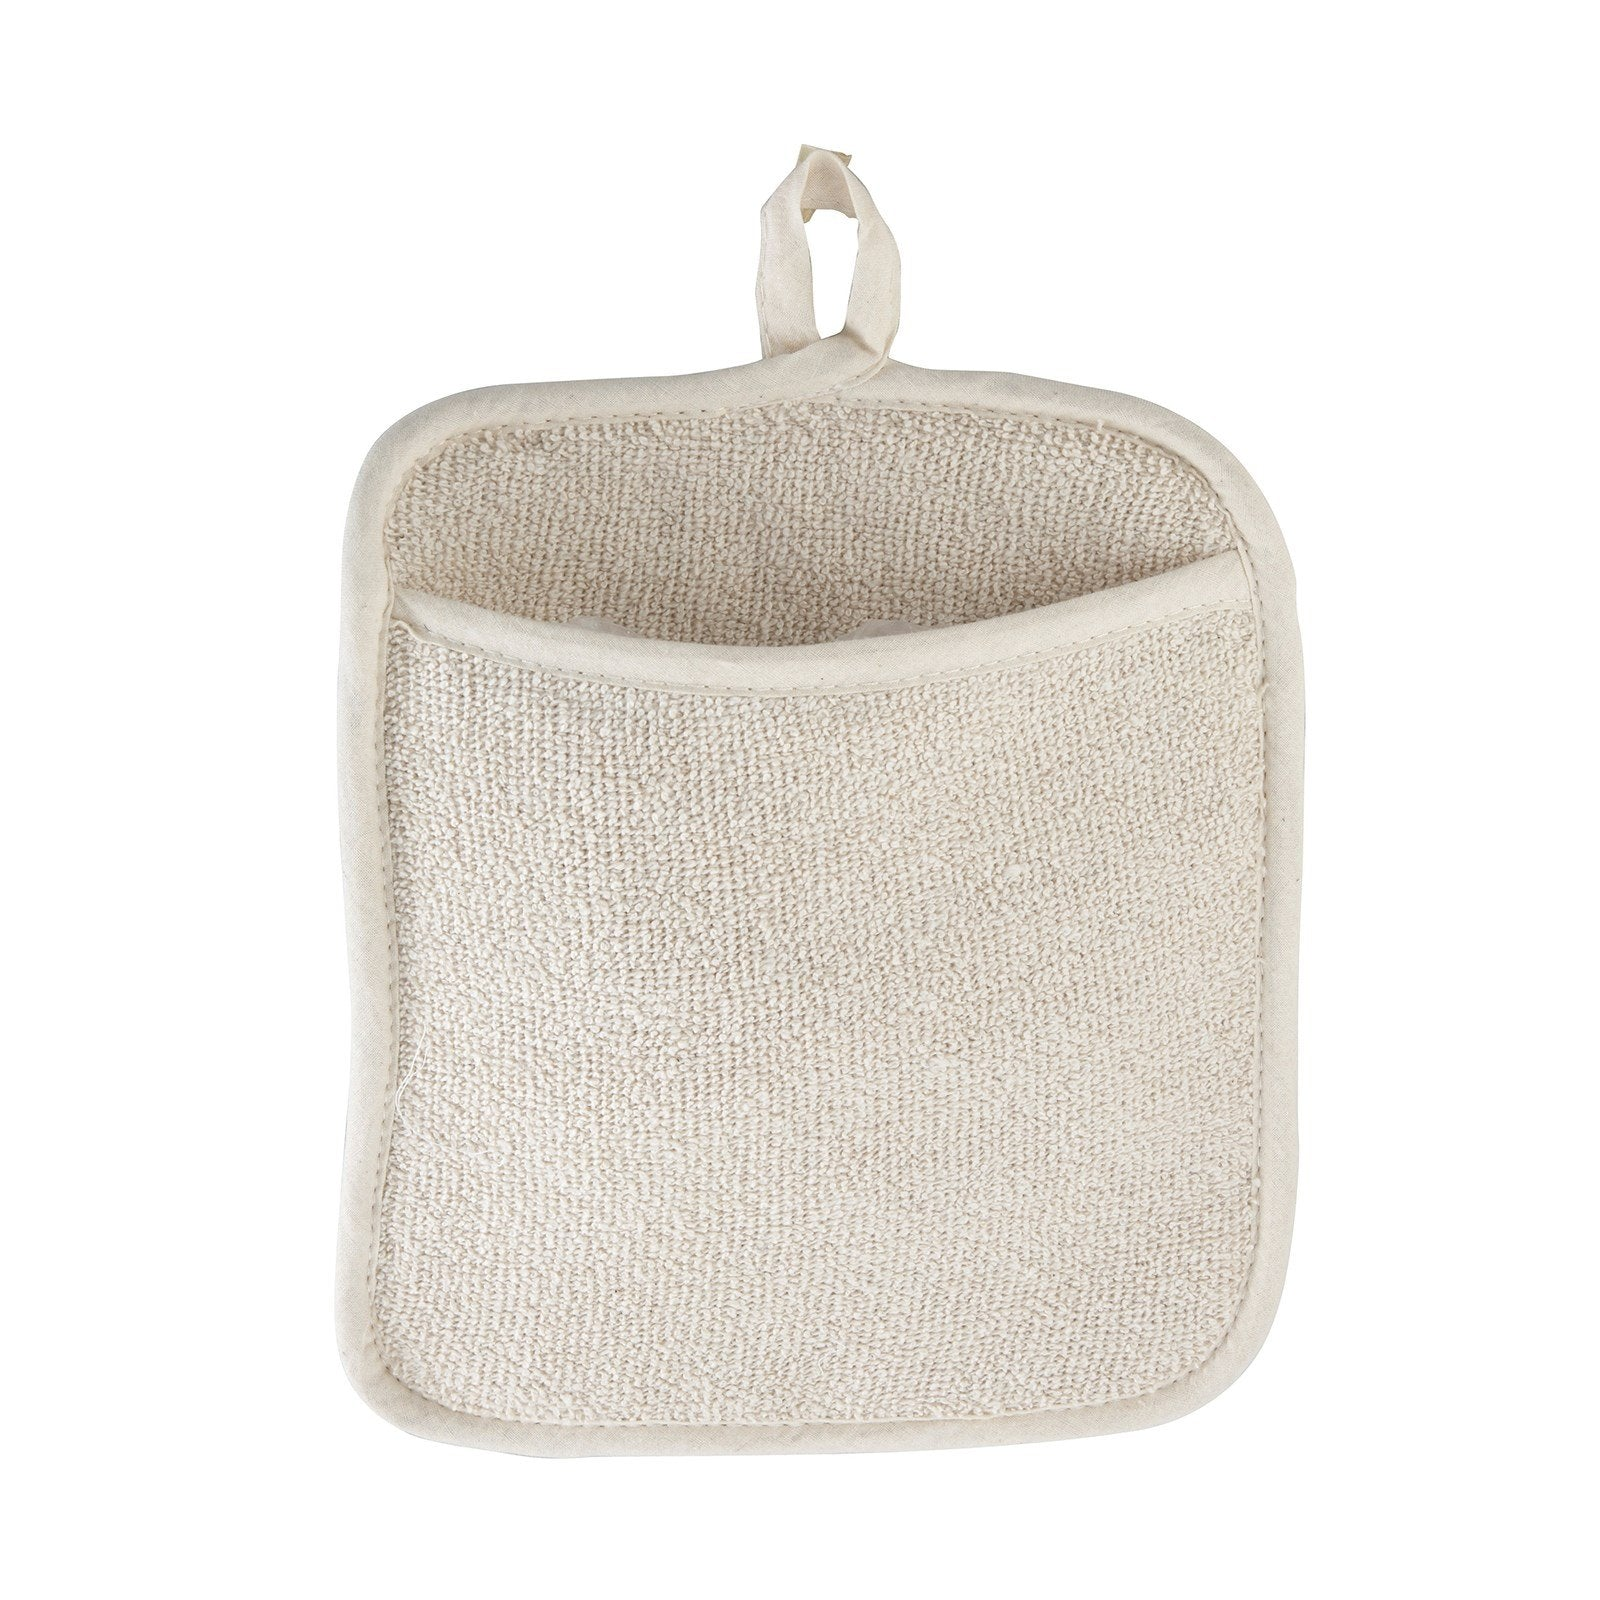 "Winco PH-9W White Terry Pot Holder with Pocket 8-1/2"" x 9-1/2"""